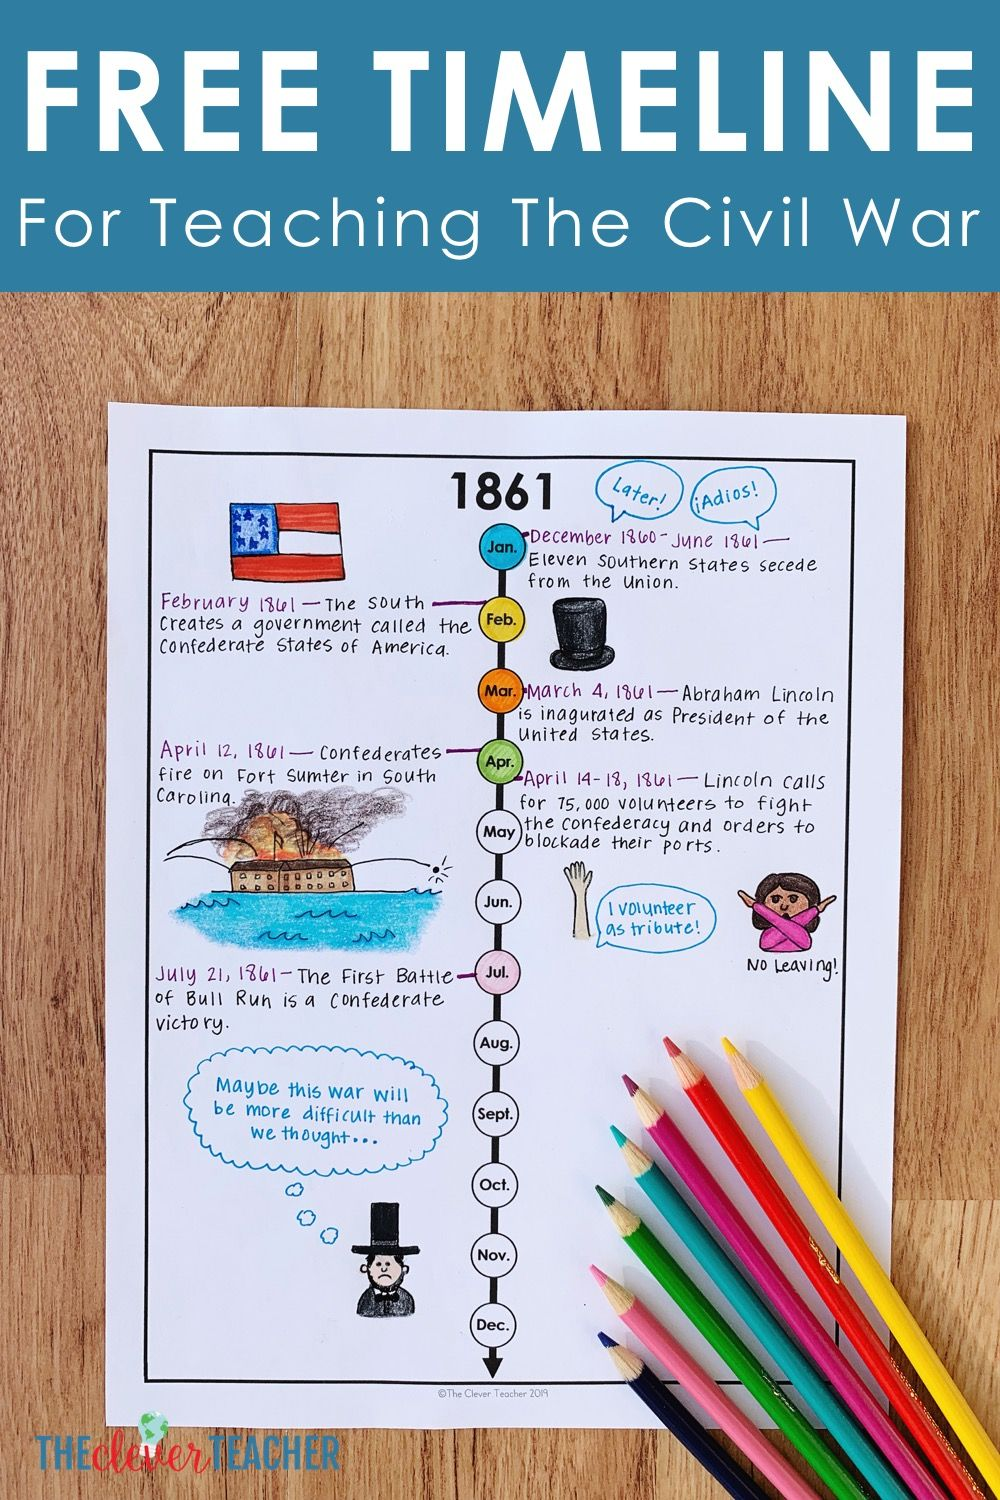 Civil War Timeline Student Created For 5th Grade And Middle School Students A Detailed Lesson And Free Civil War Timeline Teaching History Civil War Lessons Civil war worksheets elementary